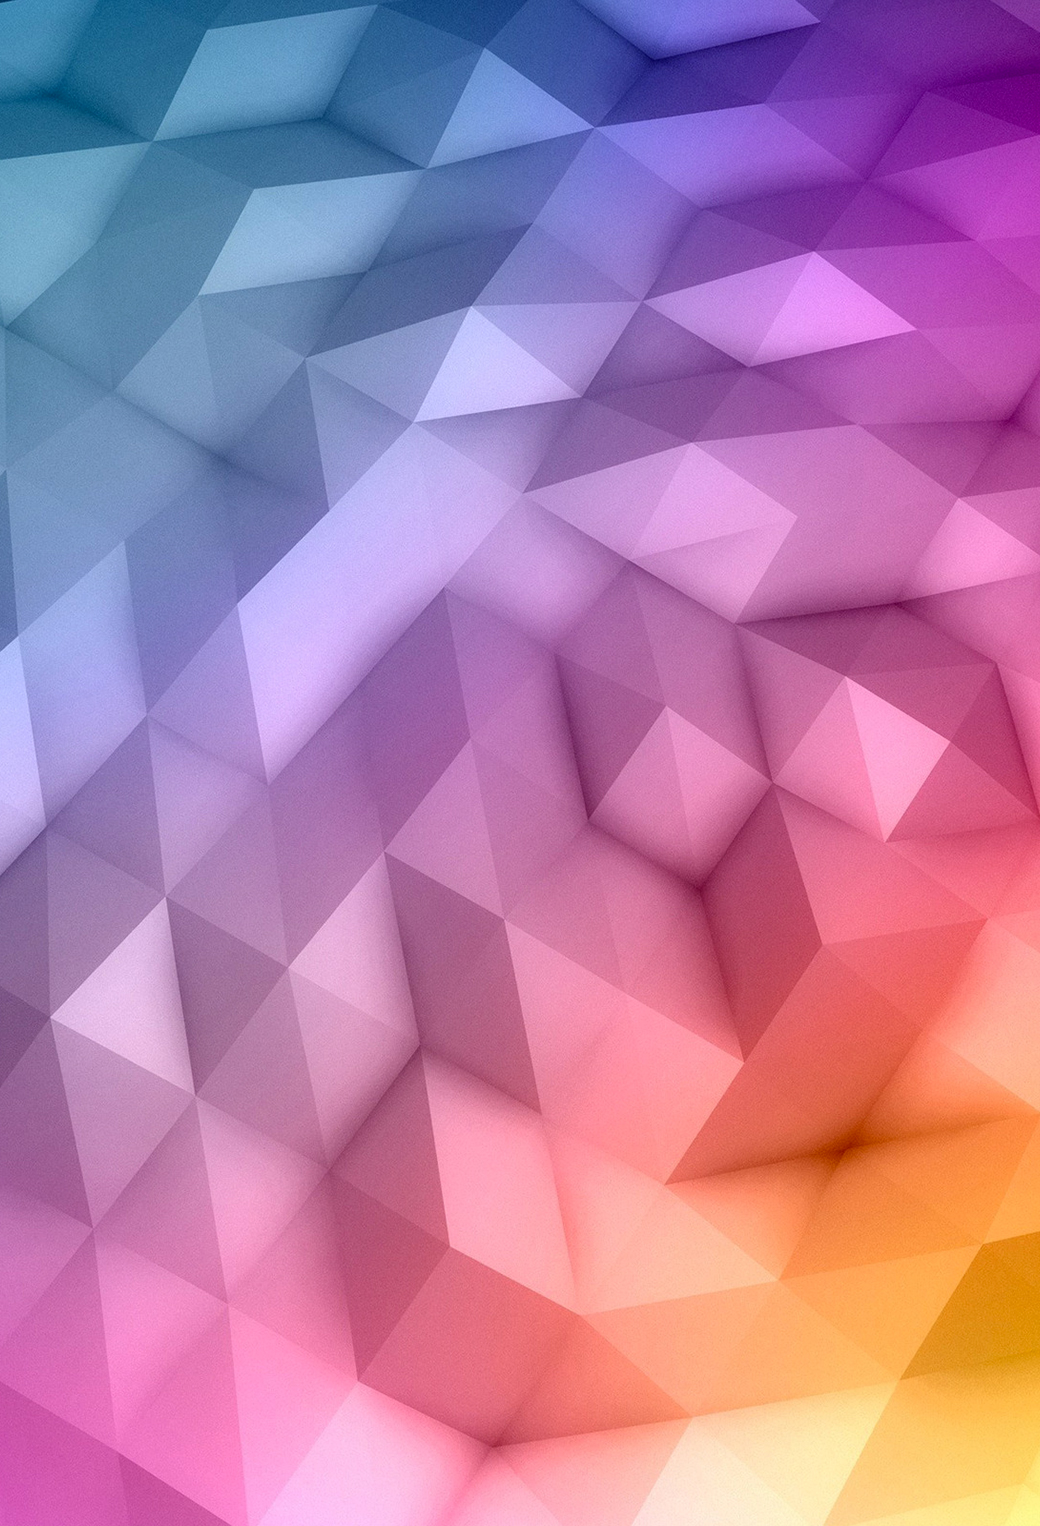 Gradient Polygons 3Wallpapers iPhone Parallax Gradient Polygons